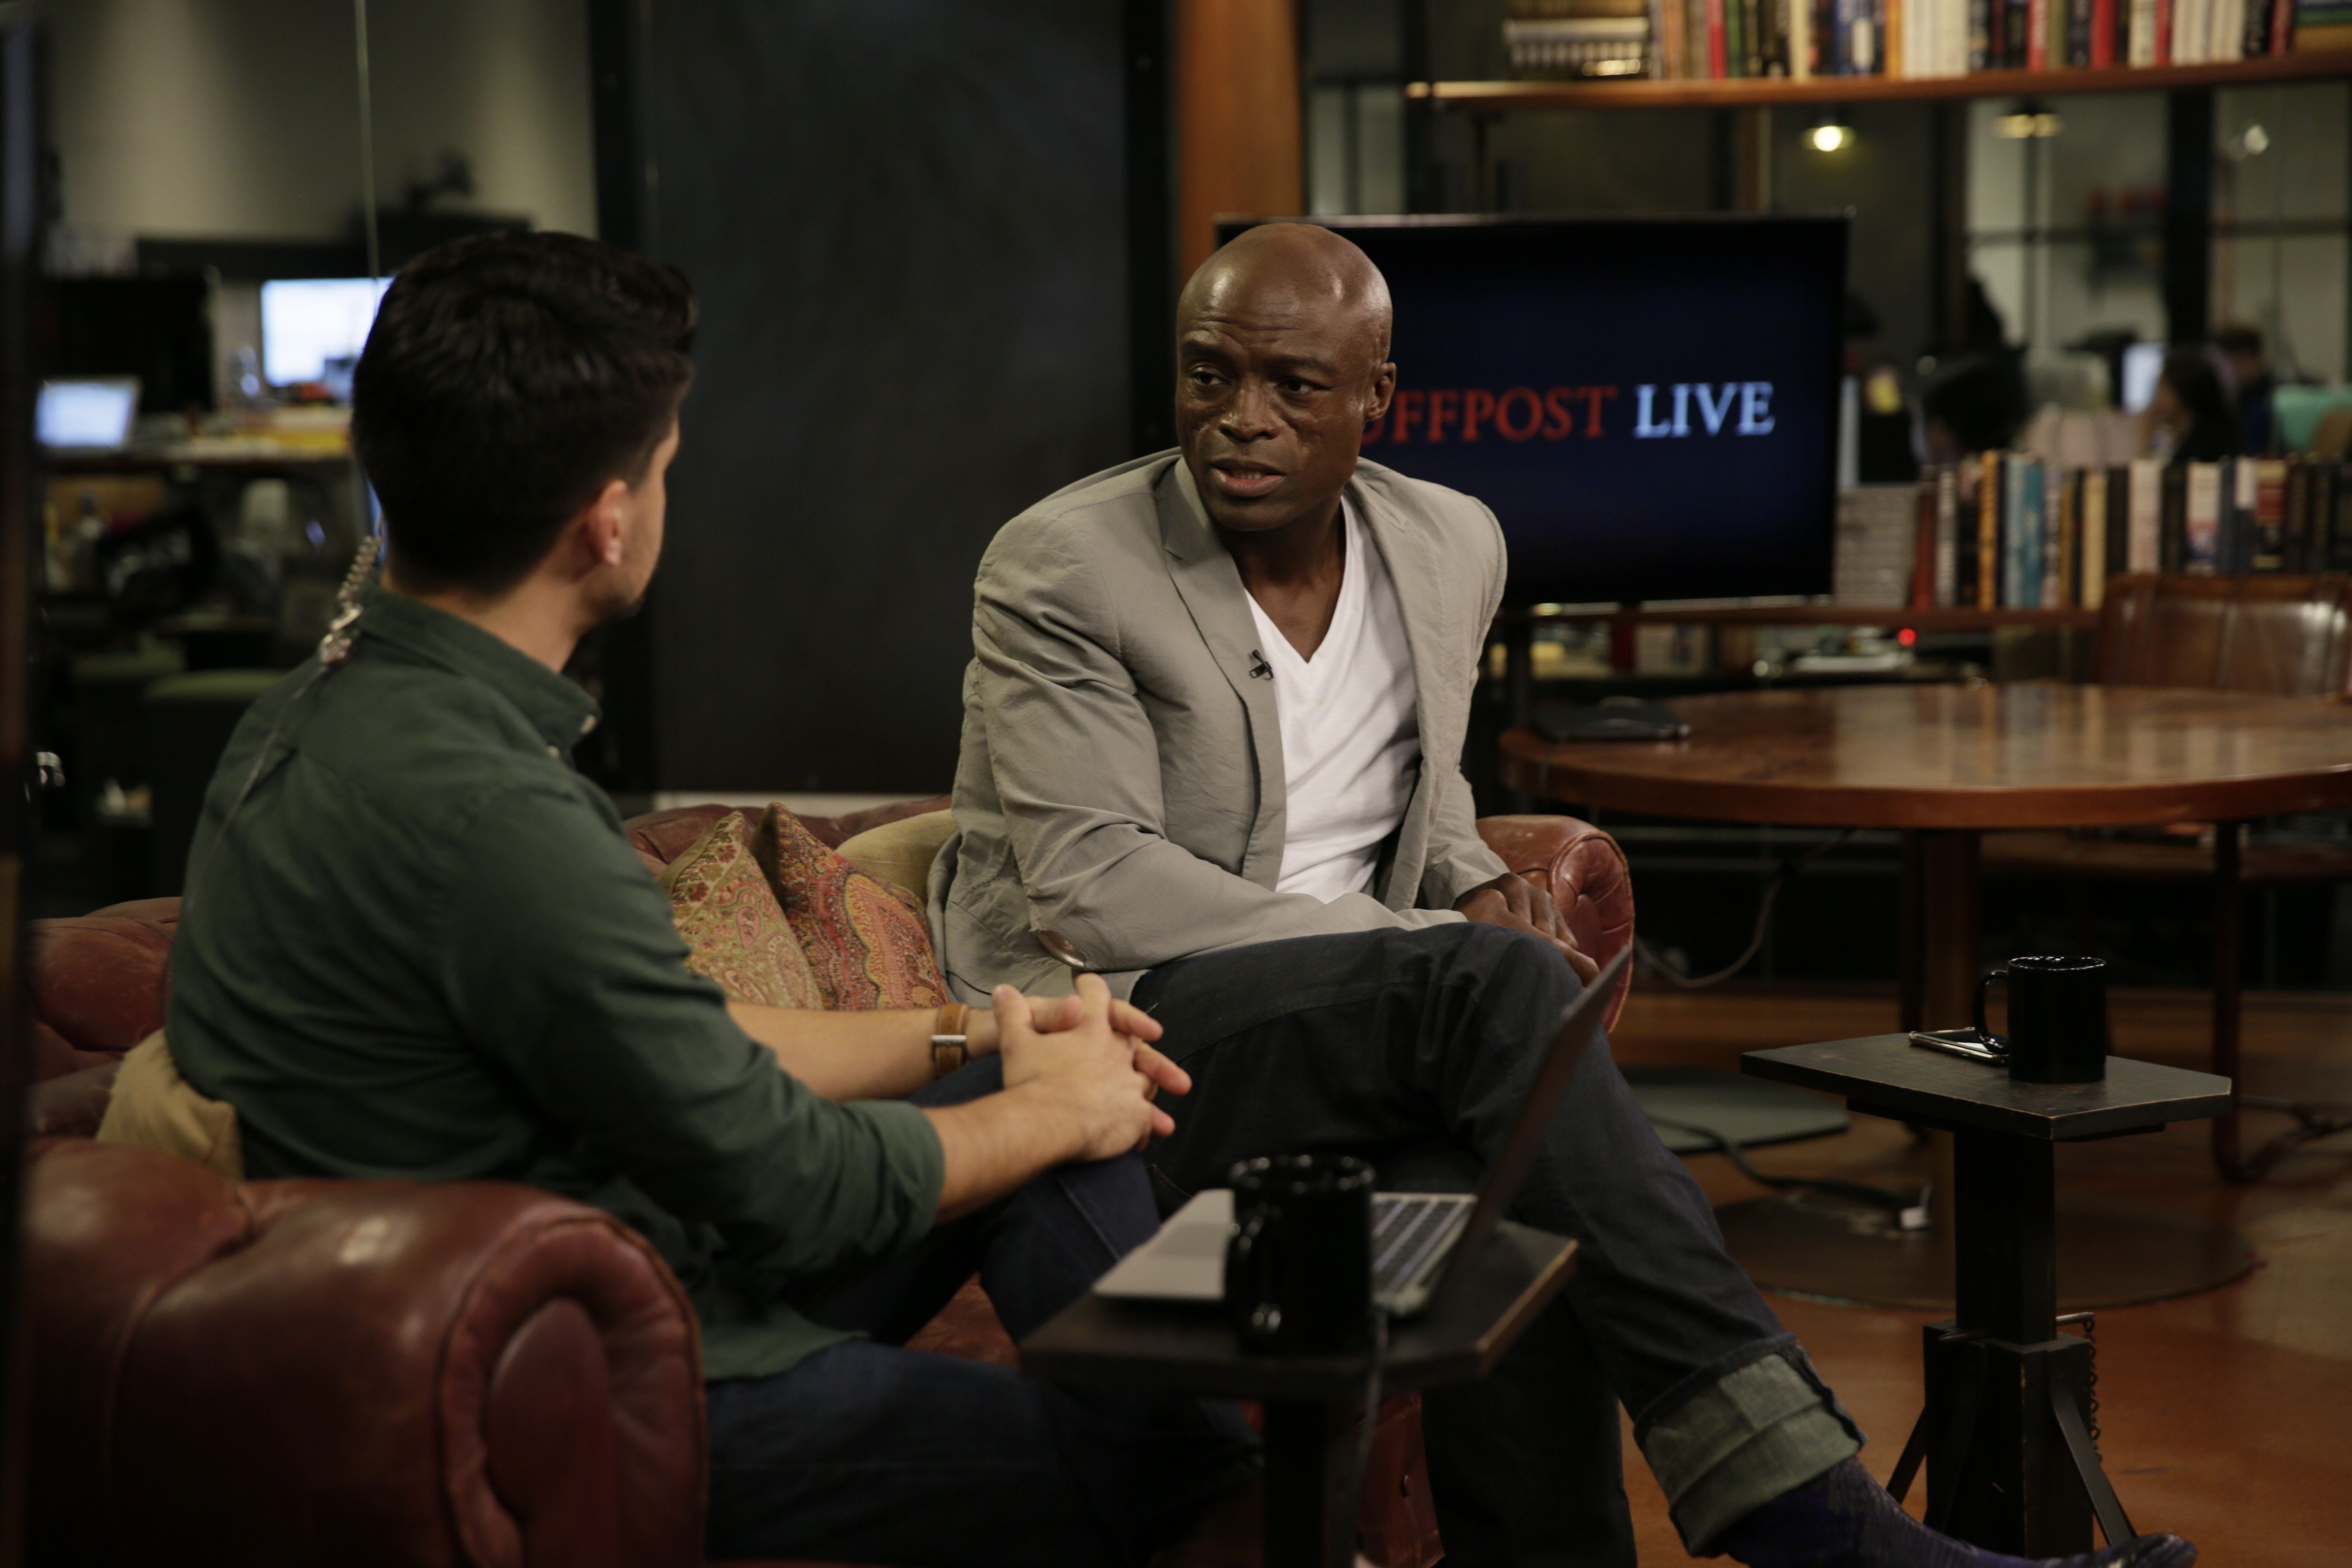 Seal spoke with HuffPost Live about the influence David Bowie had on his career.